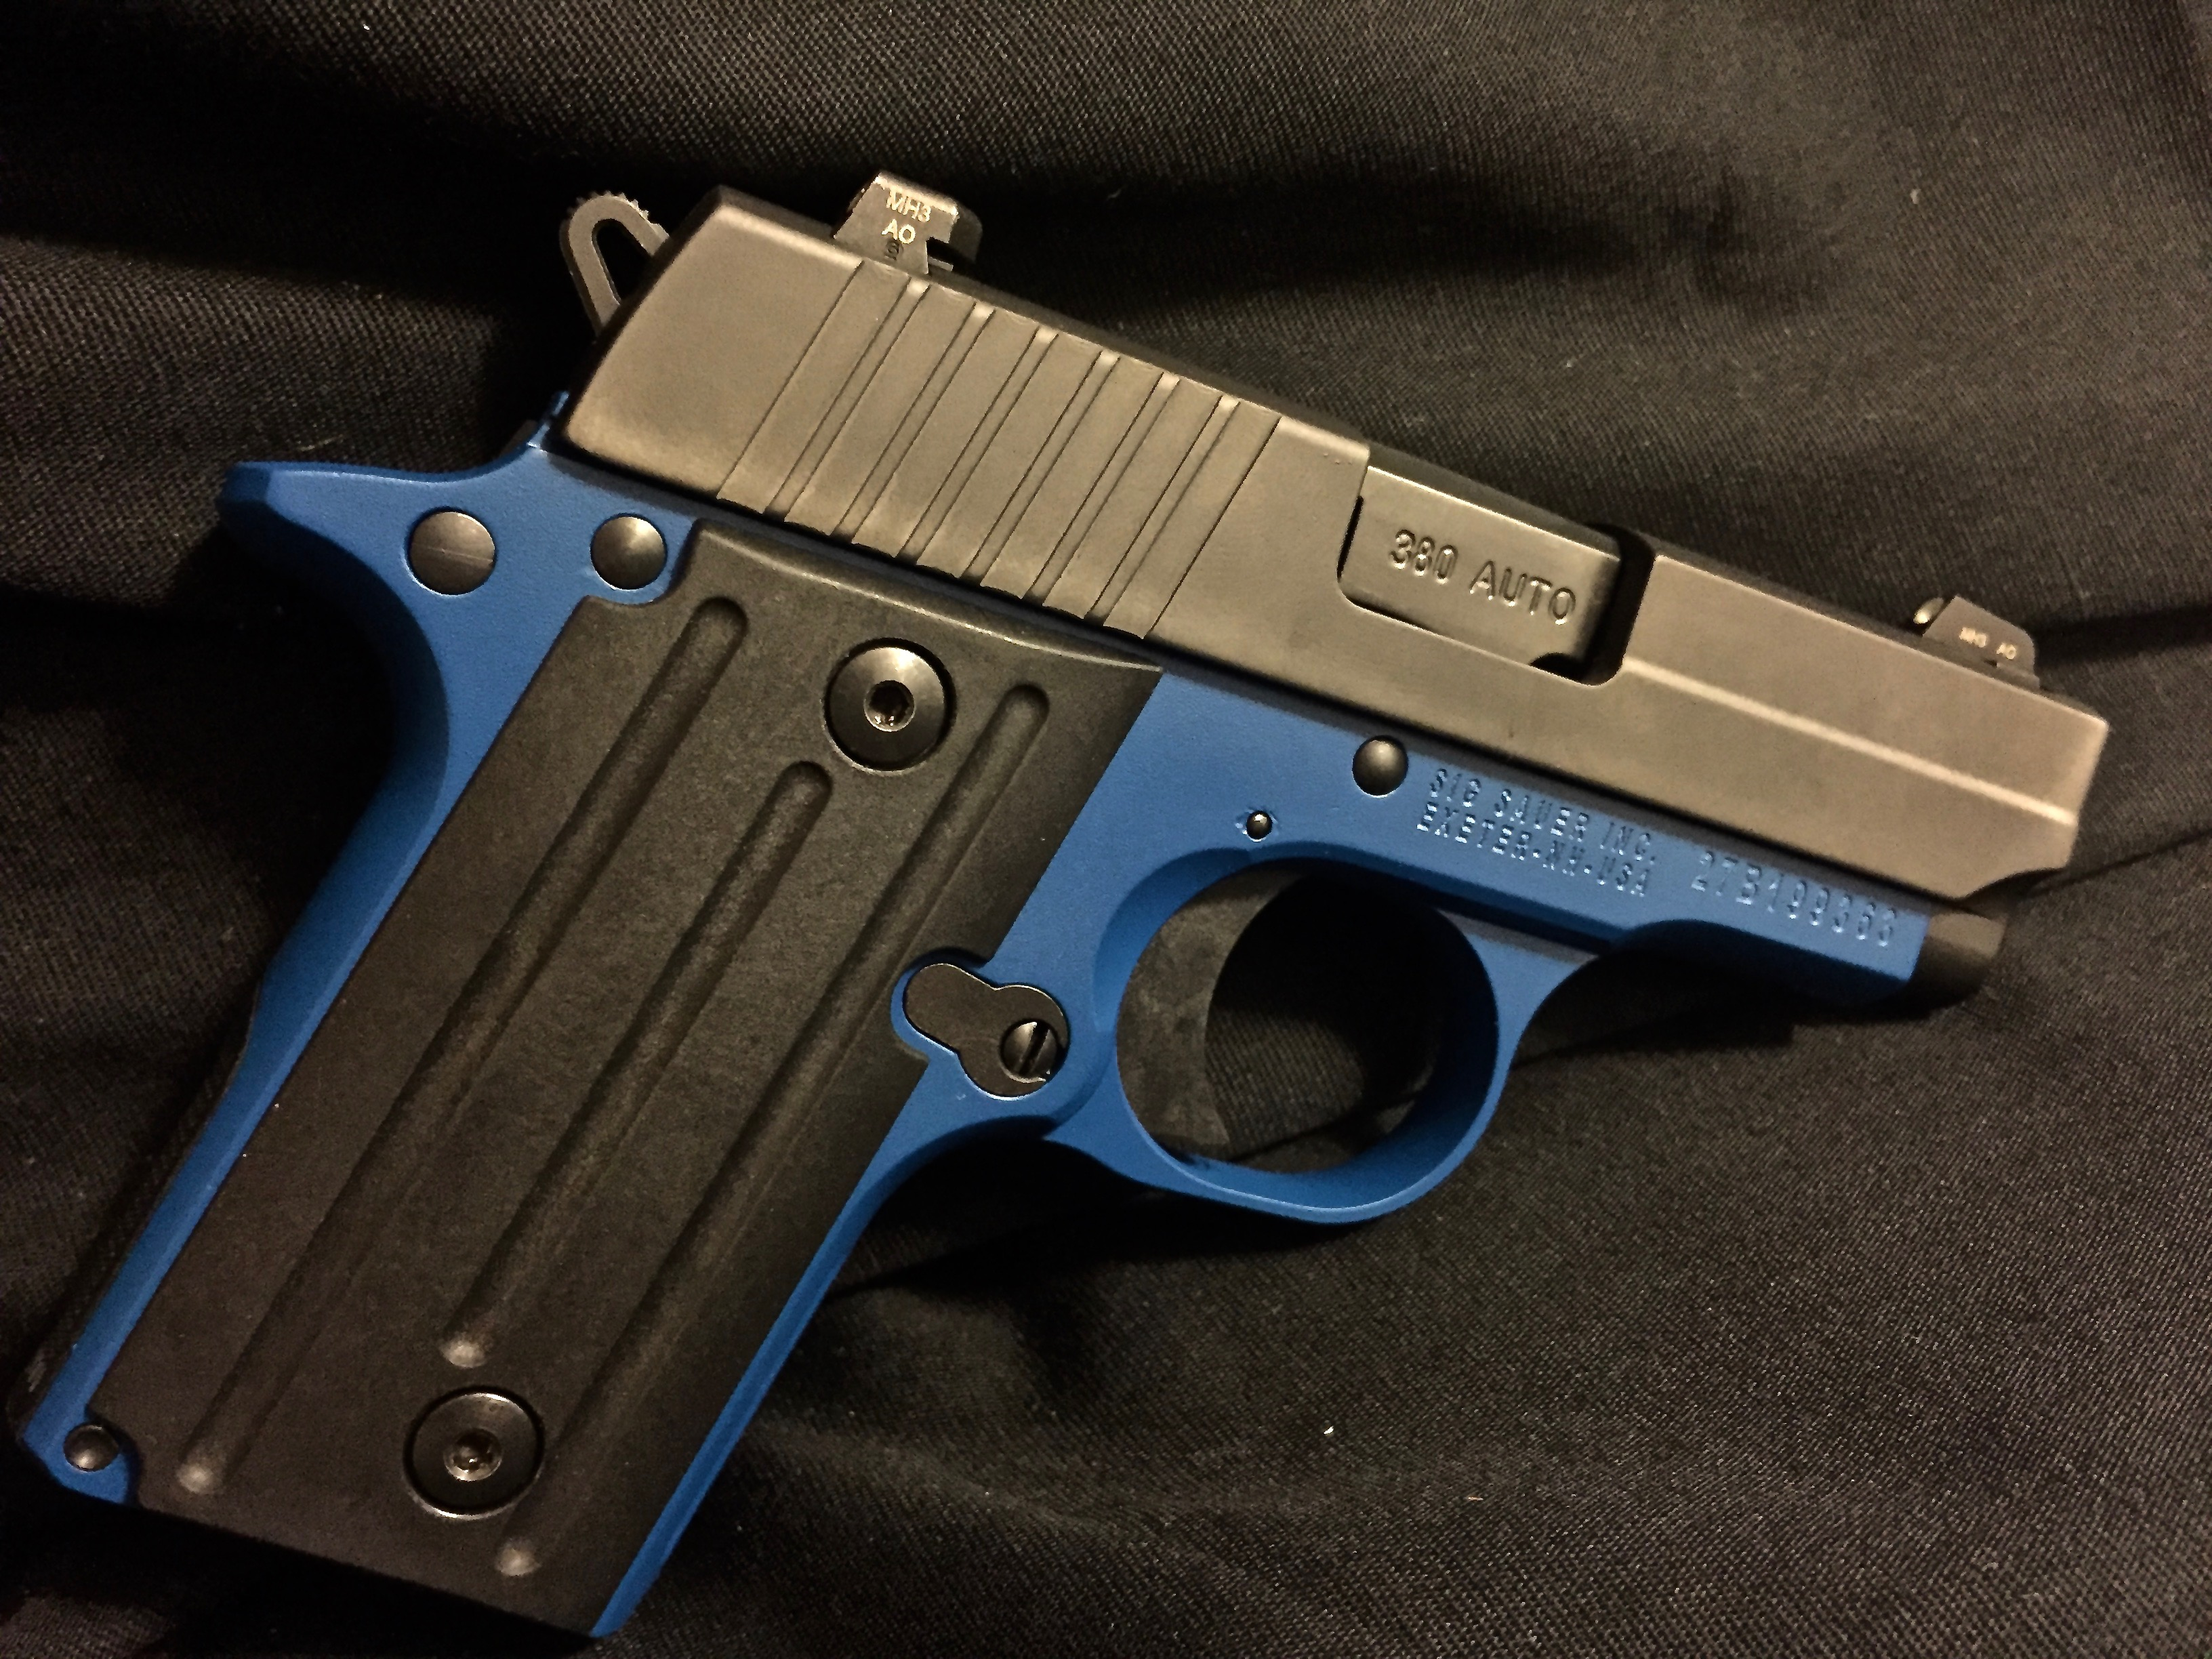 Cerakote Blue Lower Handgun